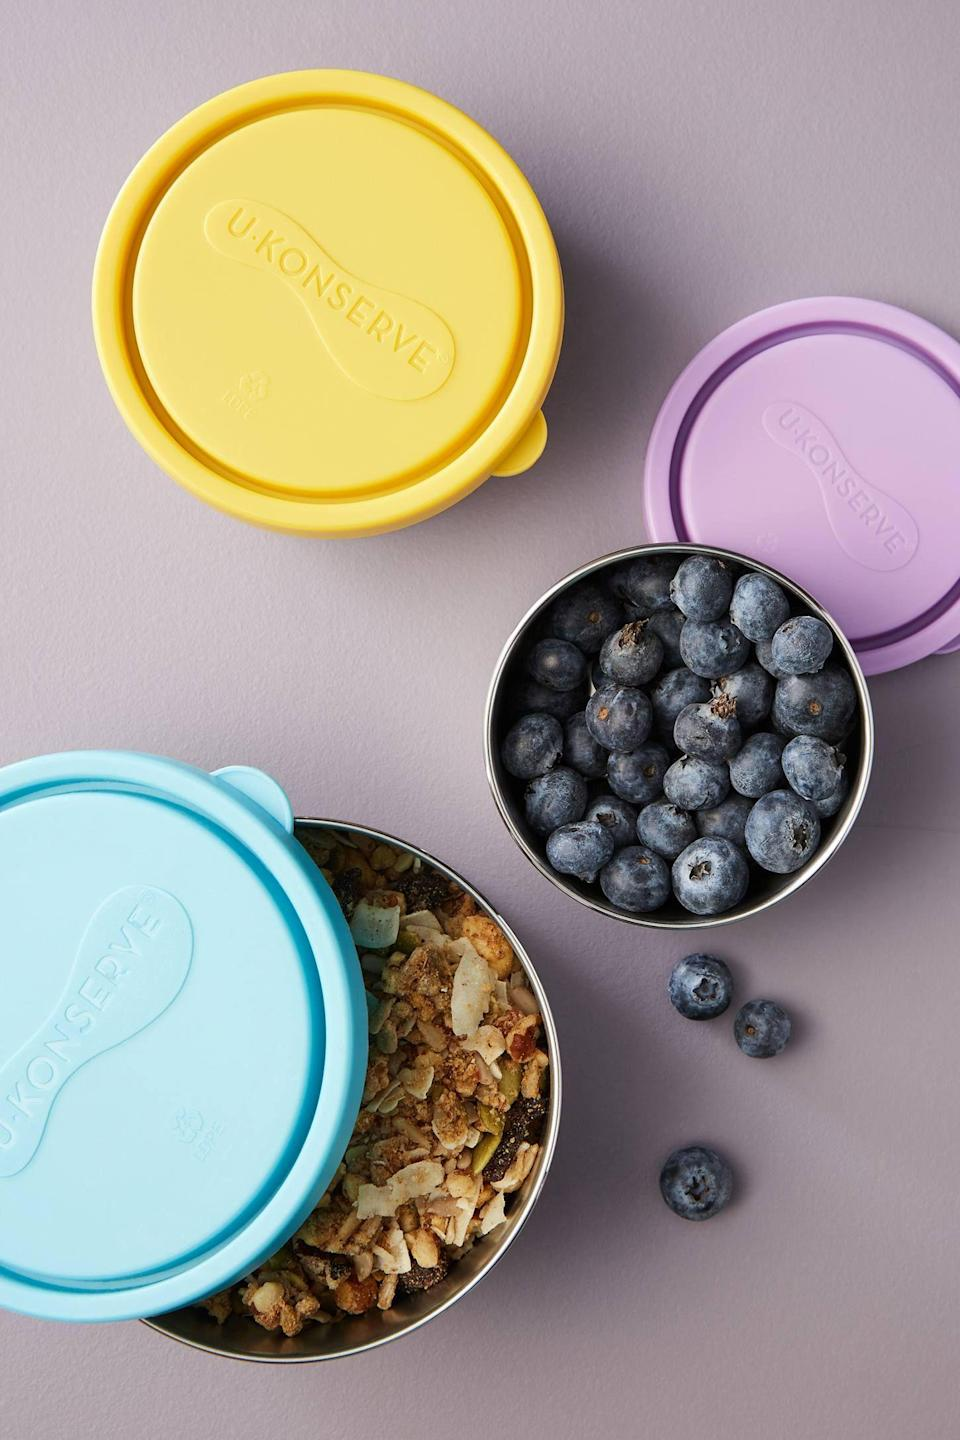 """<p><strong>U Konserve Anthropologie</strong></p><p>anthropologie.com</p><p><strong>$25.00</strong></p><p><a href=""""https://go.redirectingat.com?id=74968X1596630&url=https%3A%2F%2Fwww.anthropologie.com%2Fshop%2Fu-konserve-nesting-food-storage-containers-set-of-3&sref=https%3A%2F%2Fwww.thepioneerwoman.com%2Fhome-lifestyle%2Fdecorating-ideas%2Fg33901854%2Fbest-food-storage-containers%2F"""" rel=""""nofollow noopener"""" target=""""_blank"""" data-ylk=""""slk:Shop Now"""" class=""""link rapid-noclick-resp"""">Shop Now</a></p><p>Stainless steel containers are ideal for packing foods you'd like to keep cool, like fruit, pasta salad, or guacamole. These are BPA-free, dishwasher-safe, and nest to avoid taking up valuable cabinet real estate.</p>"""